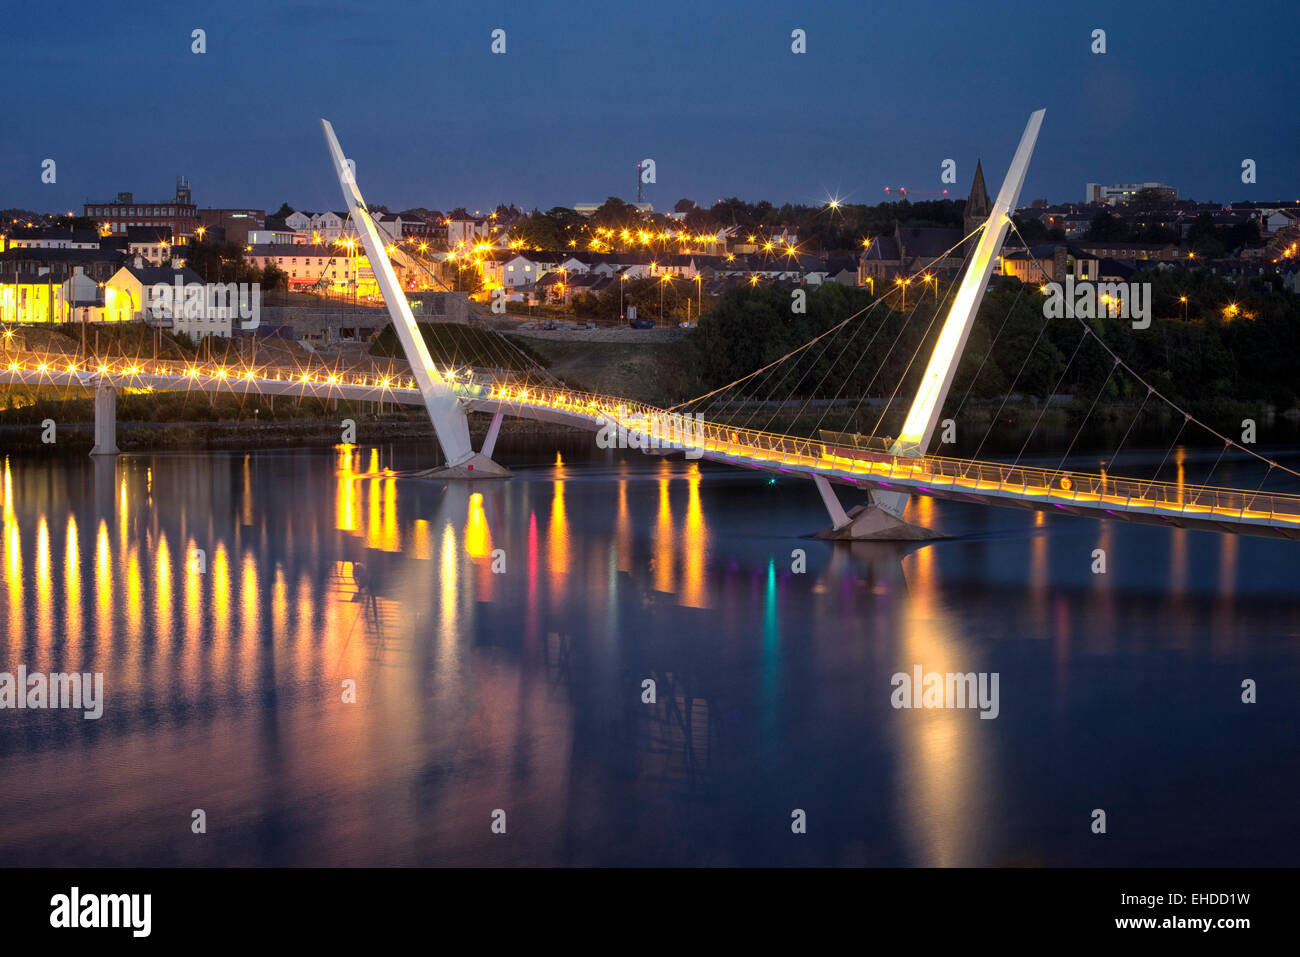 The Peace Bridge. Derry/Londonderry, Northern Ireland. - Stock Image